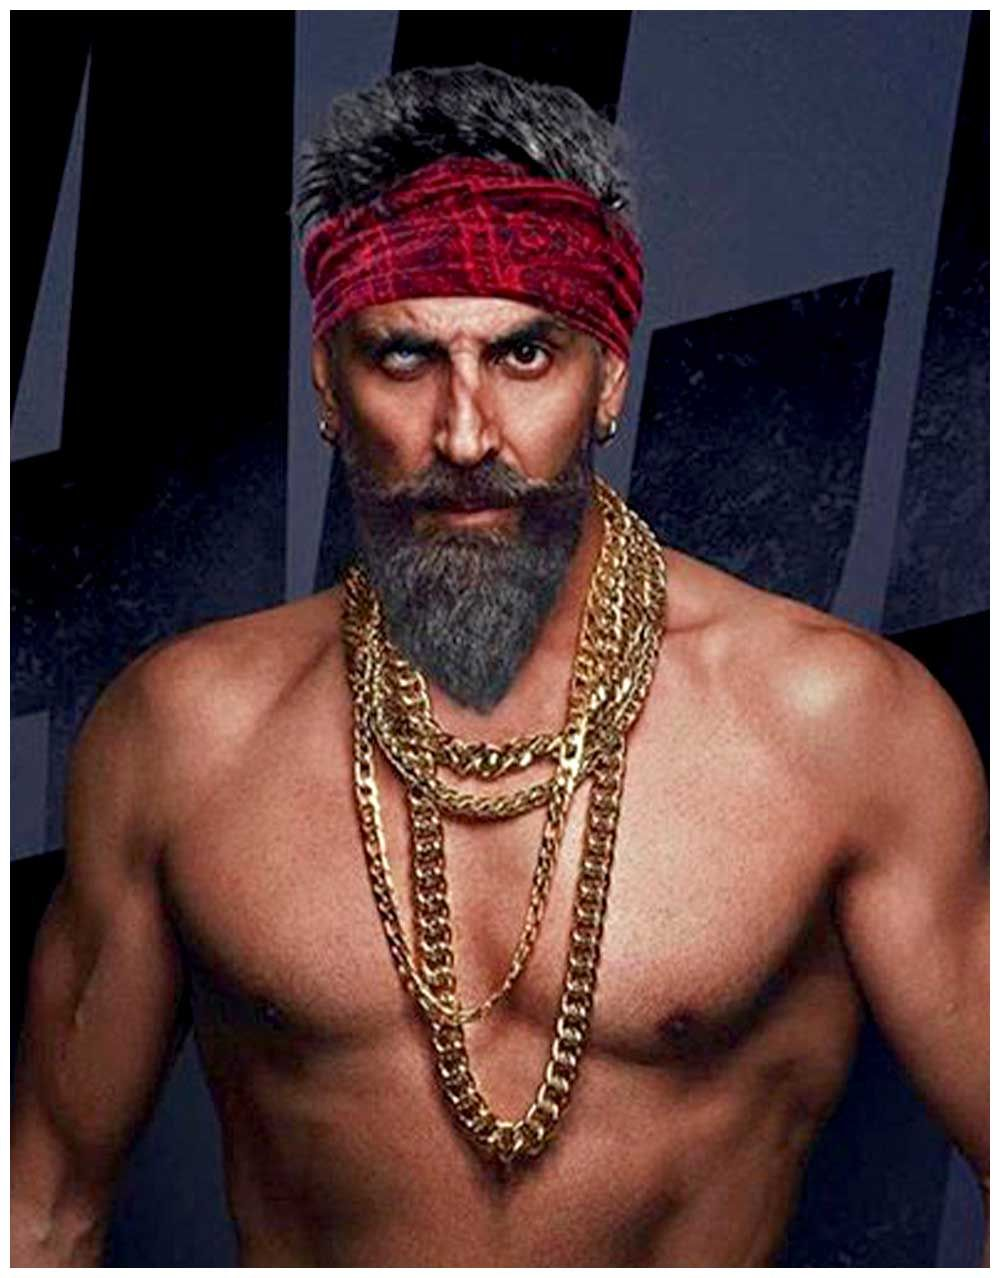 Akshay Kumar bachchan pandey images download for whatsapp dp